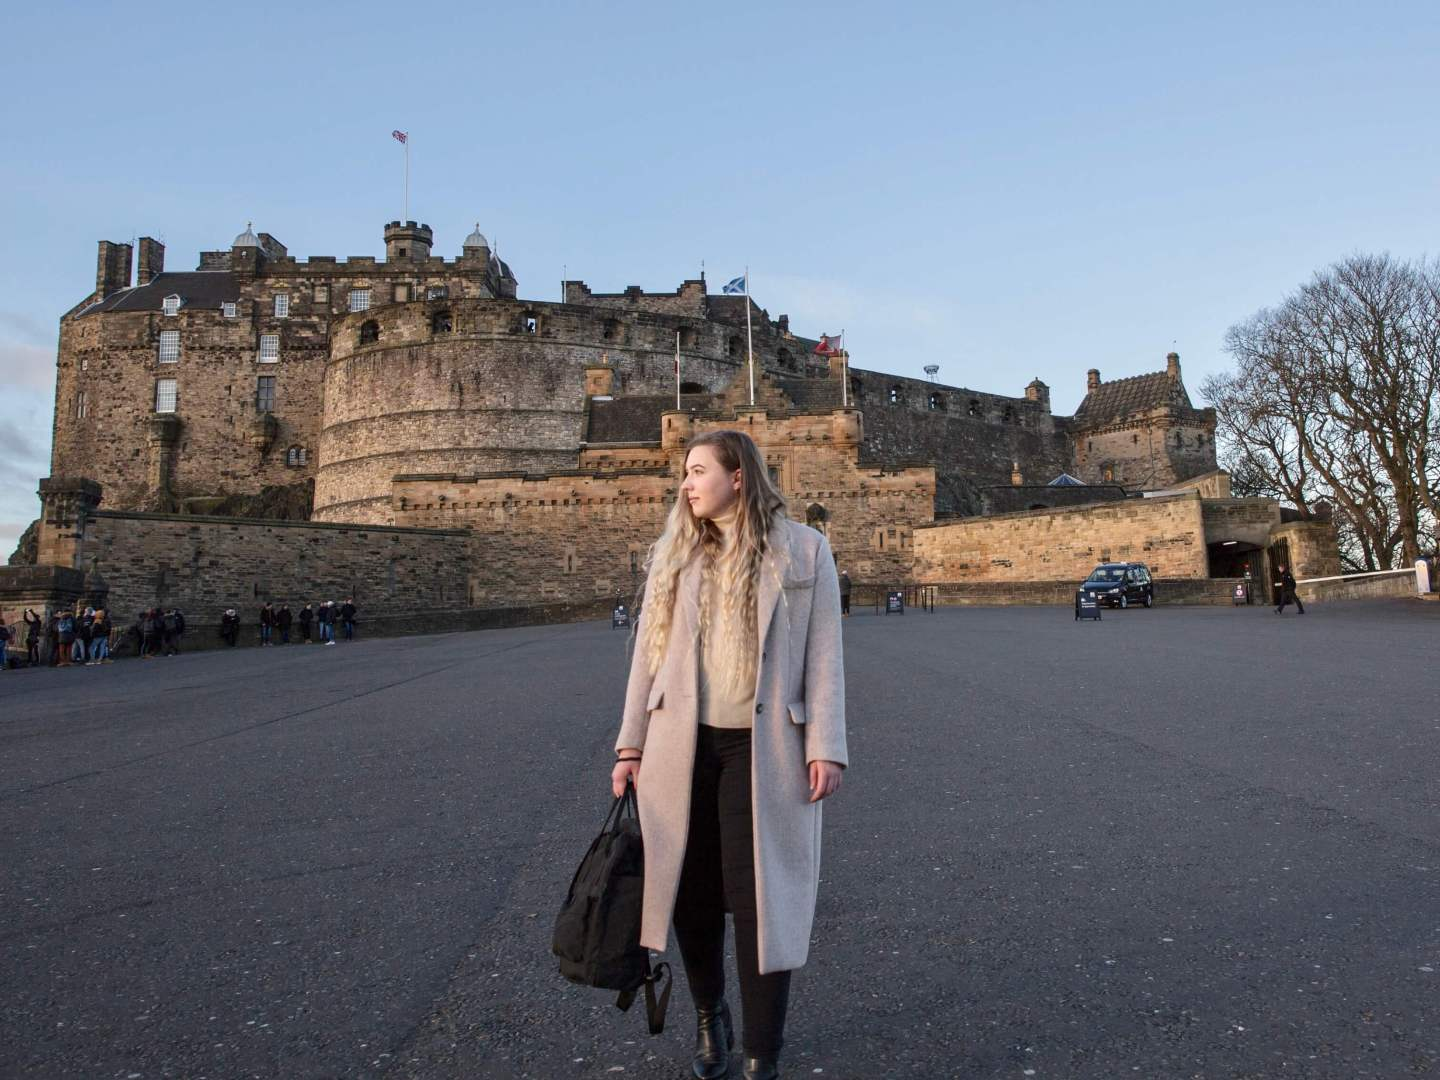 The Best Things To Do In Edinburgh | Edinburgh Travel Guide